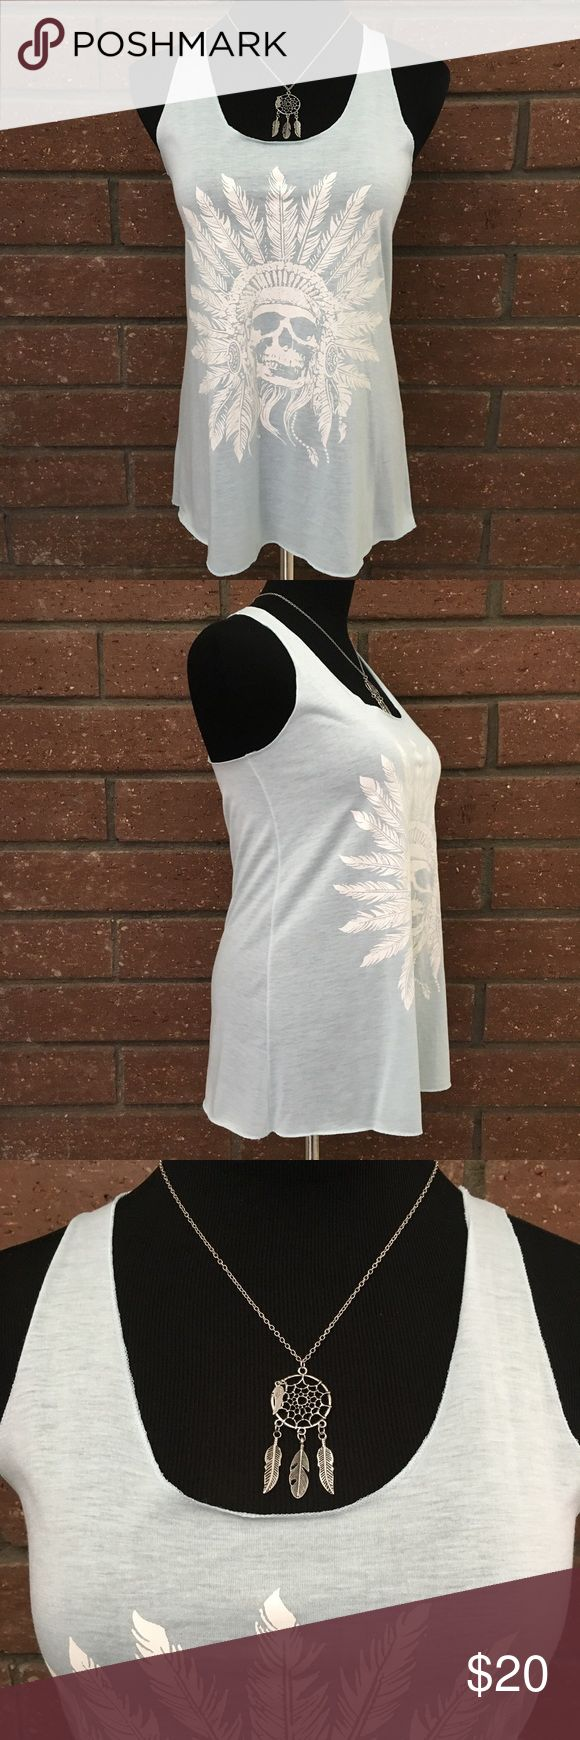 """Mint Green Southwestern Tank Top Light mint green tank top with feather headdress printed in white. Content is 65% Cotton & 35% Polyester. Measurements flat are 15.75"""" pit to pit & 26"""" long. In excellent condition with NO spots, holes or pilling. Bear Dance Tops Tank Tops"""